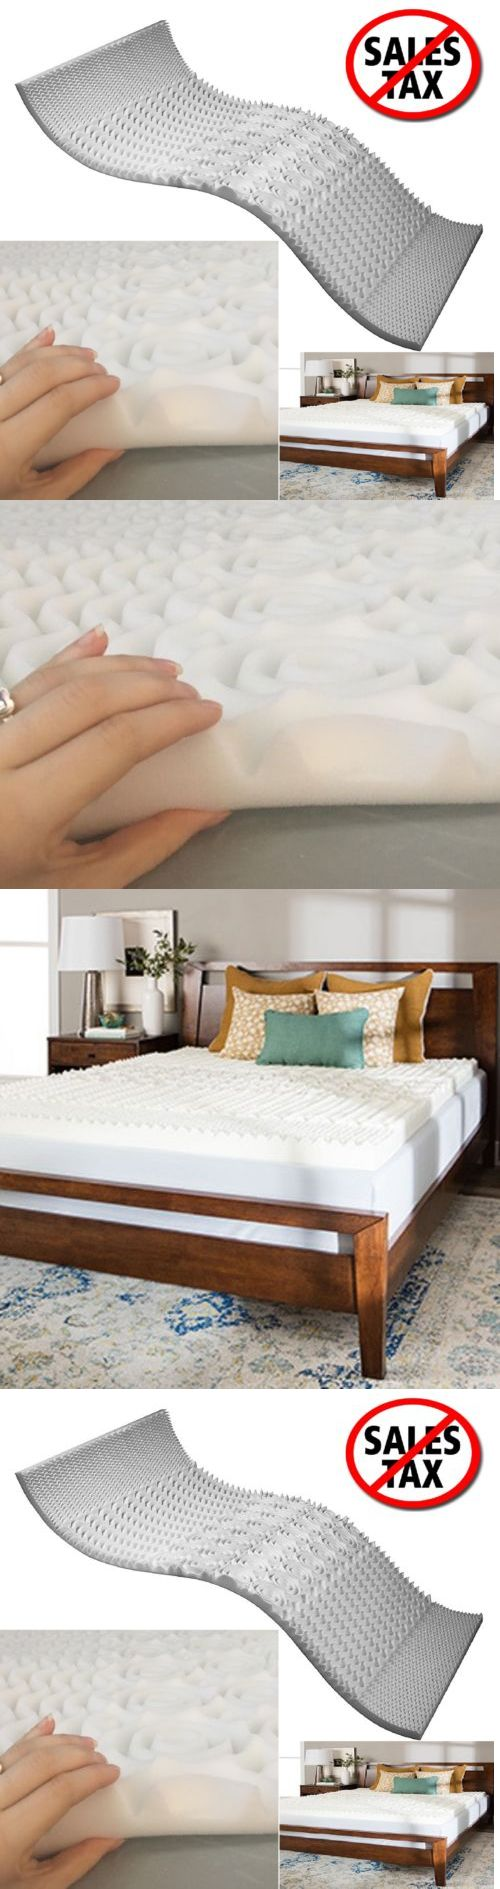 Mattress Pads and Feather Beds 175751: Memory Foam Mattress Topper Queen  Size Cooling Gel Orthopedic